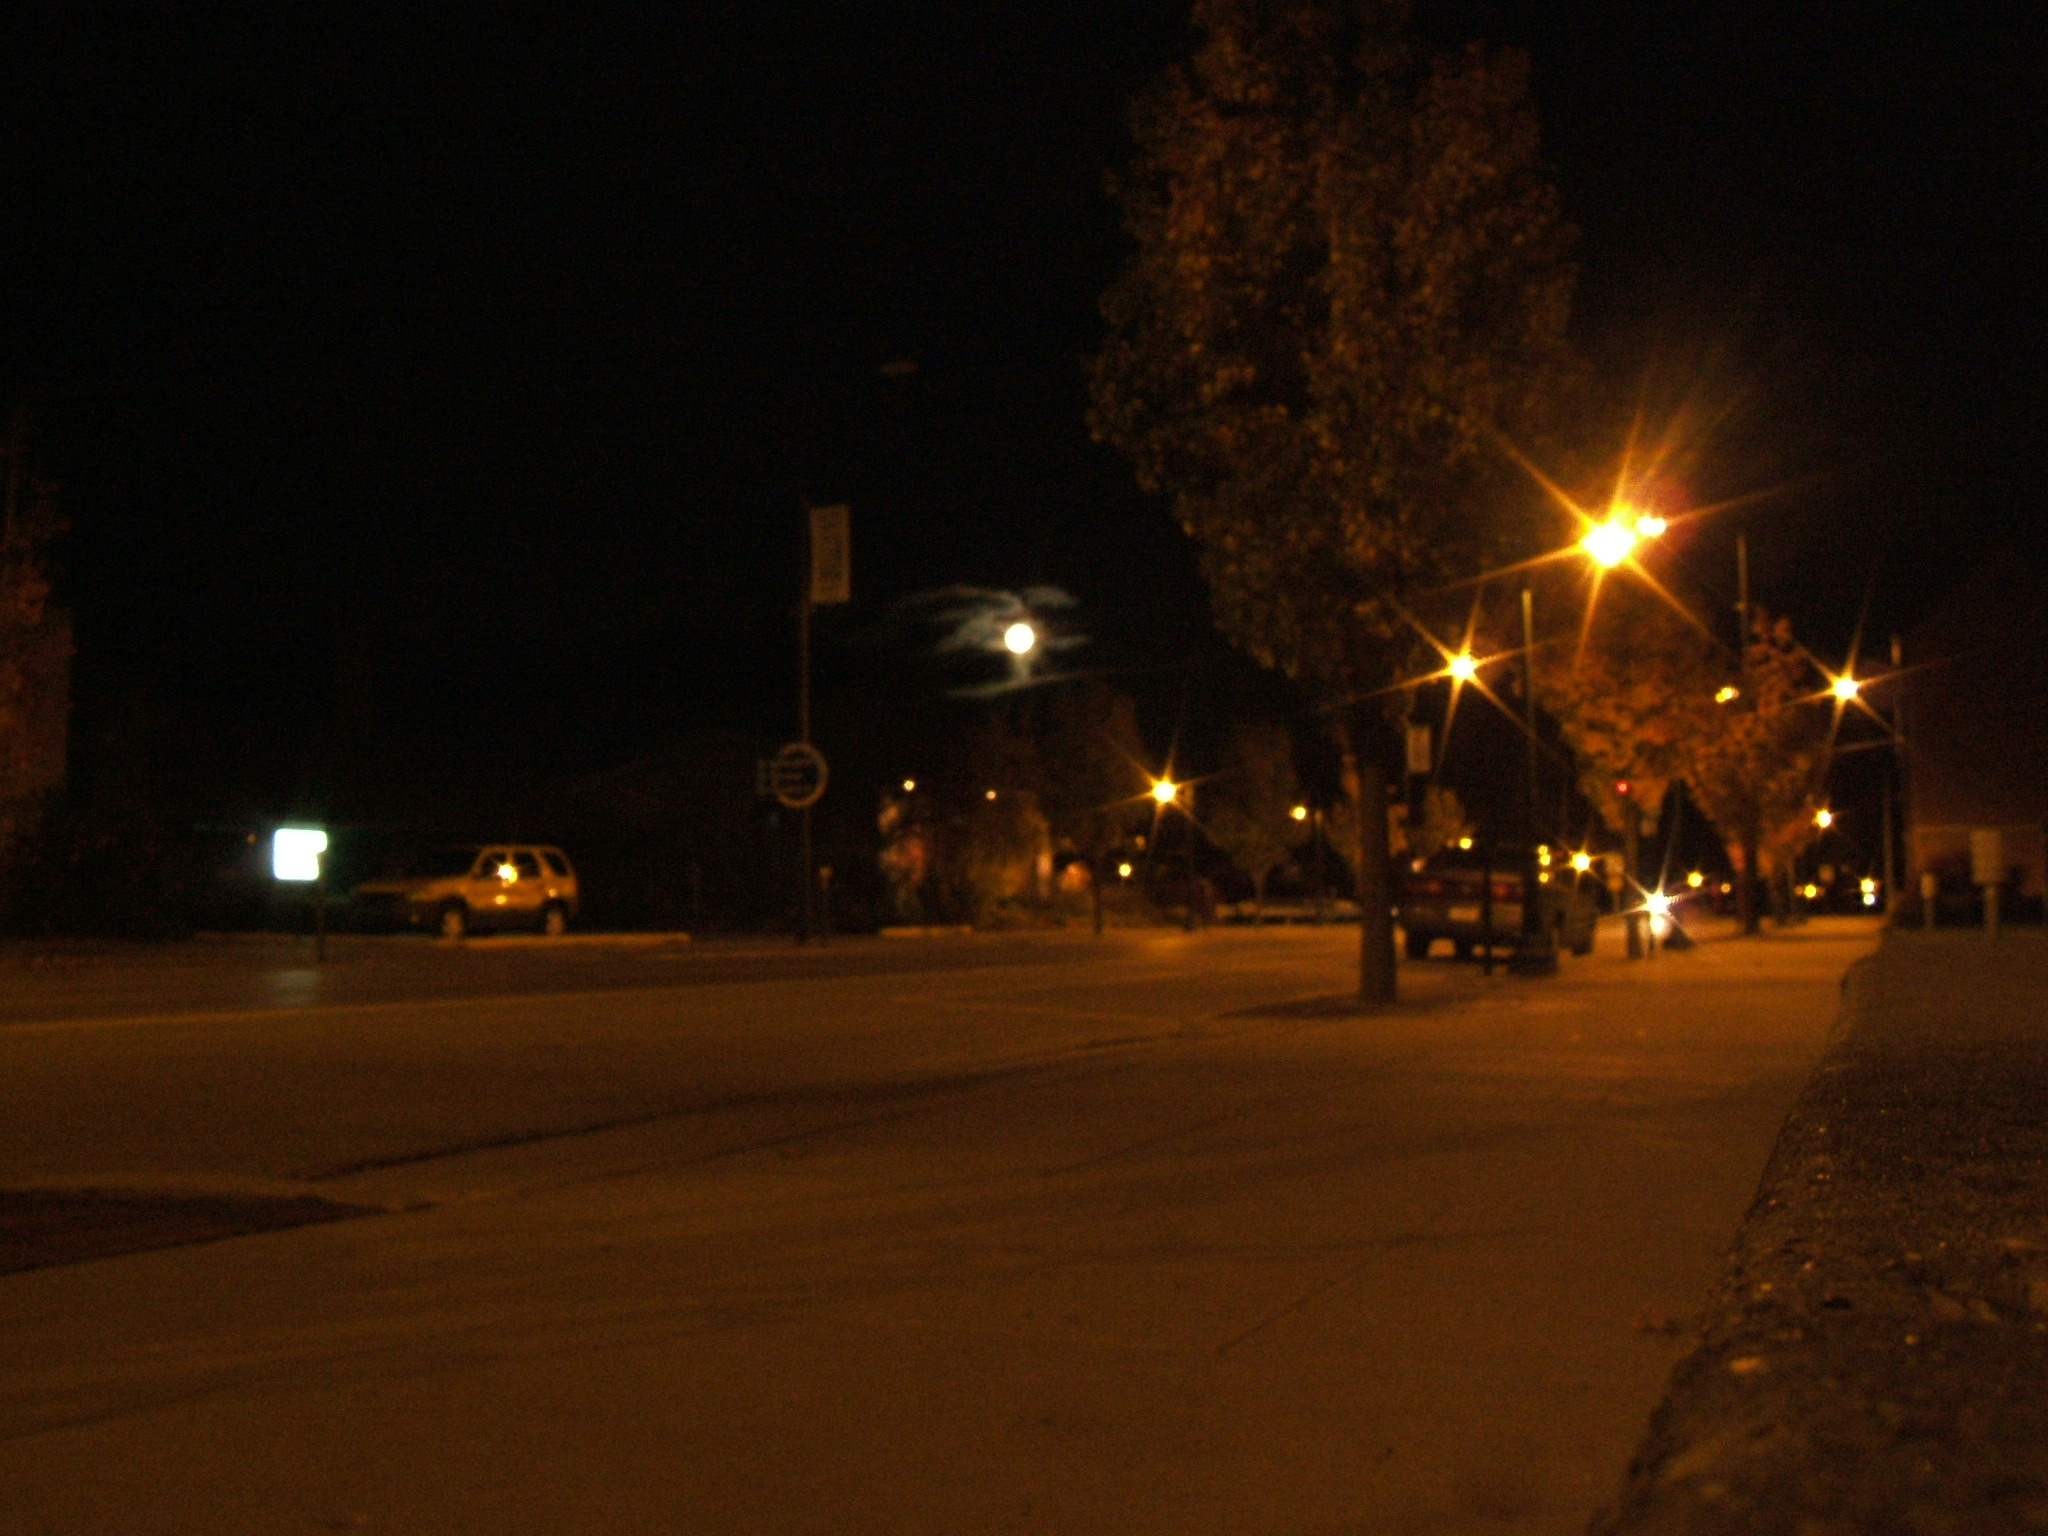 Moon rising over State Street